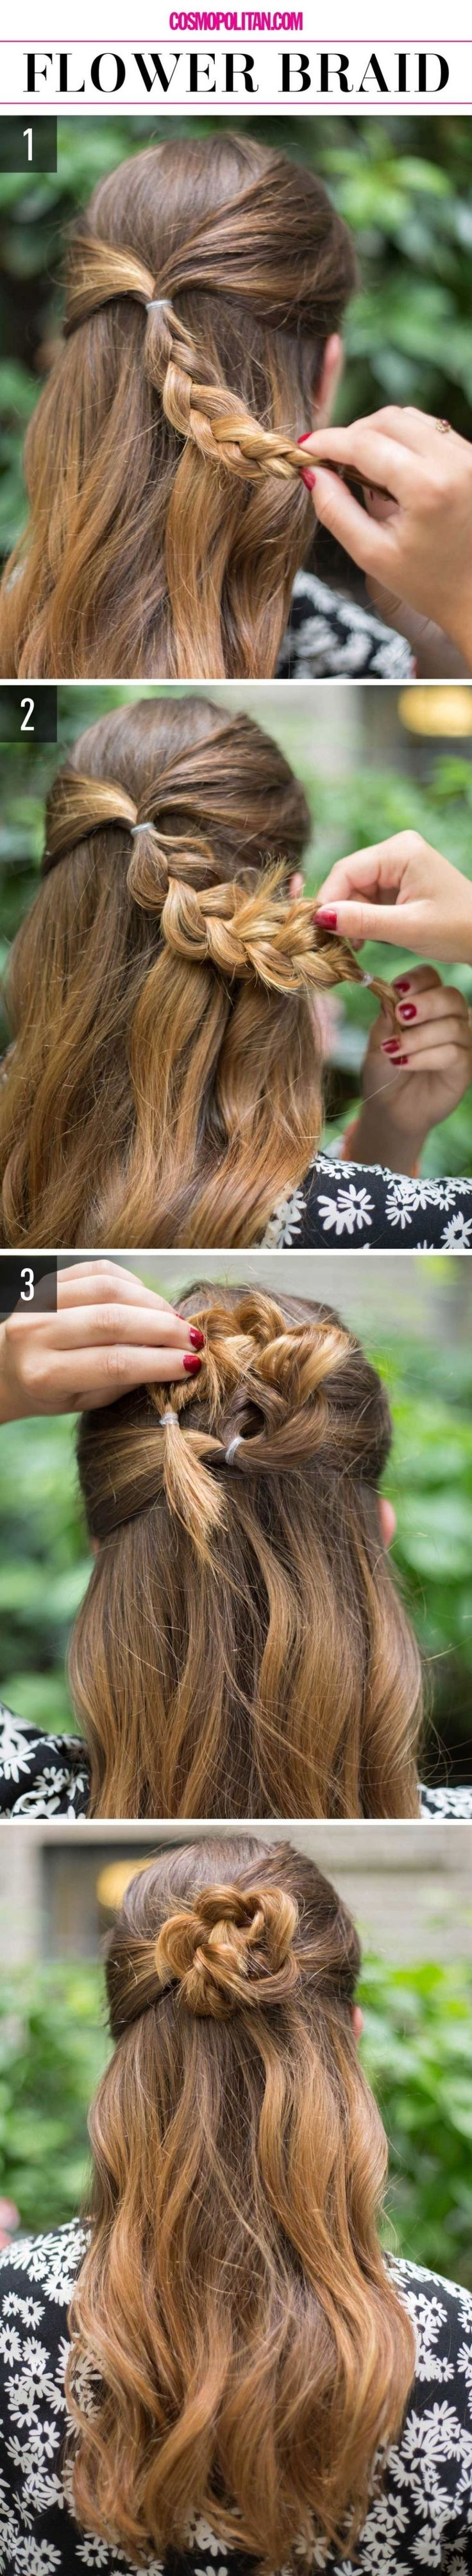 25+ best ideas about Easy Girl Hairstyles on Pinterest ...